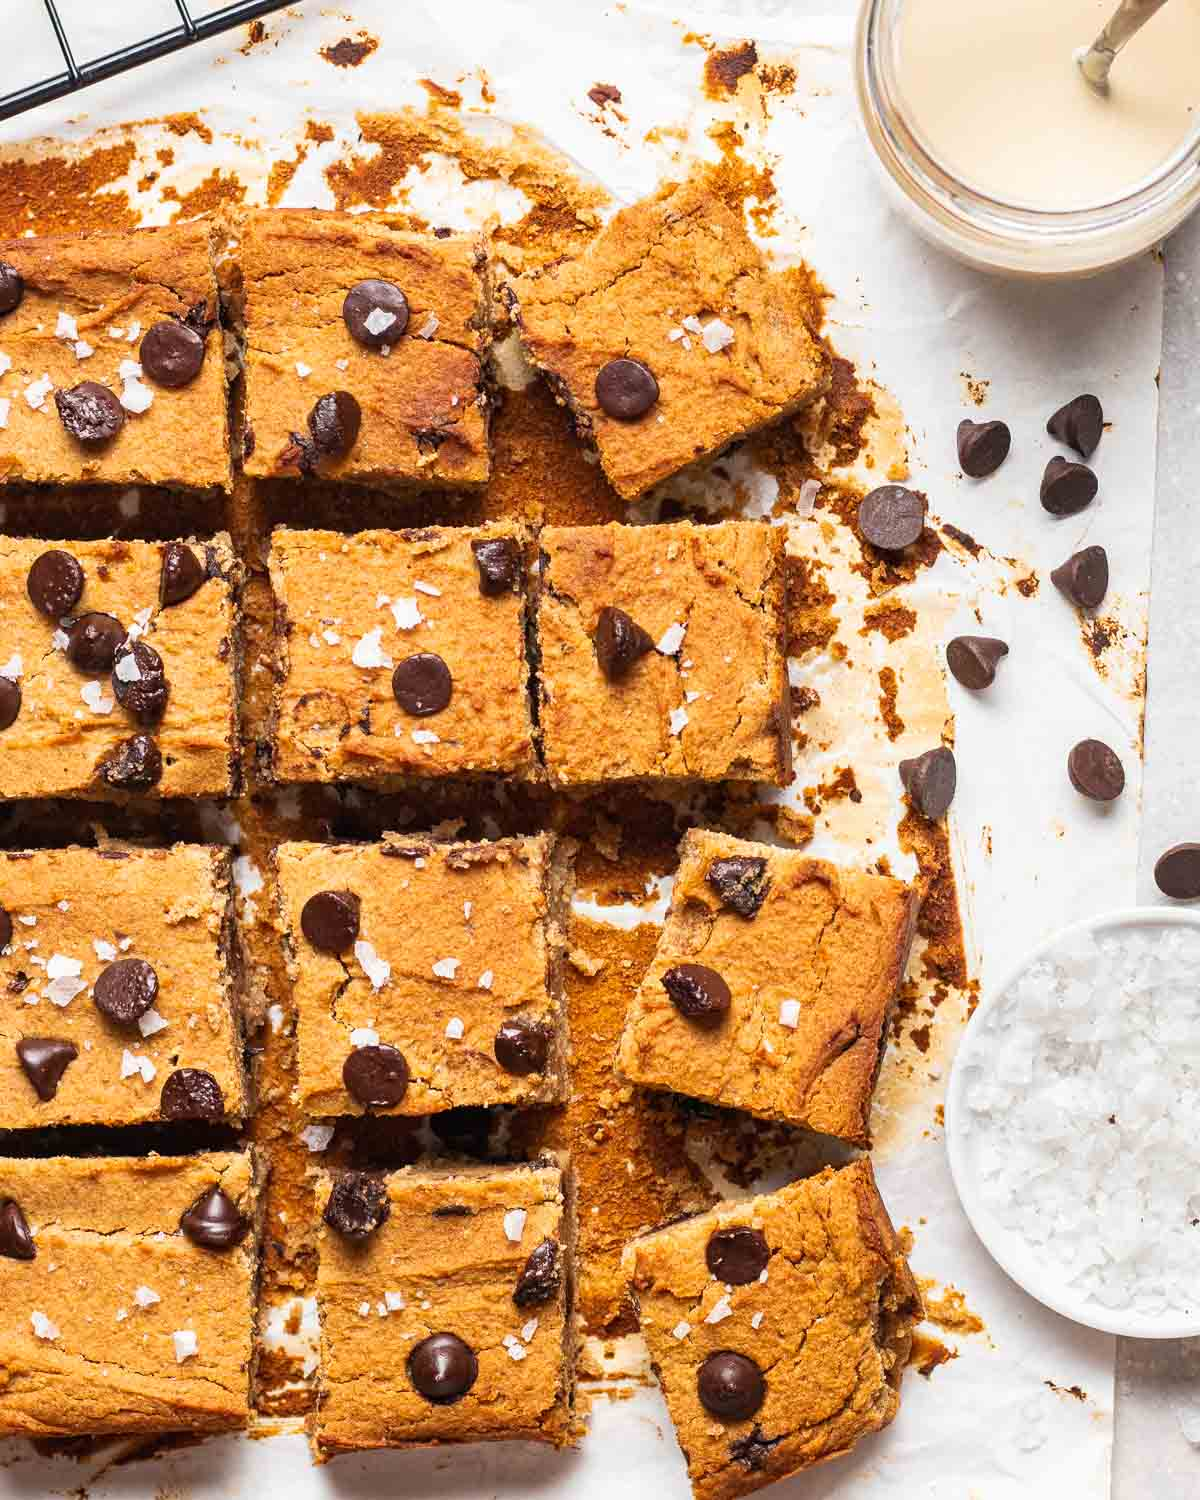 A tray of sliced blondies on a parchment paper with tahini, chocolate chips and salt in the background.